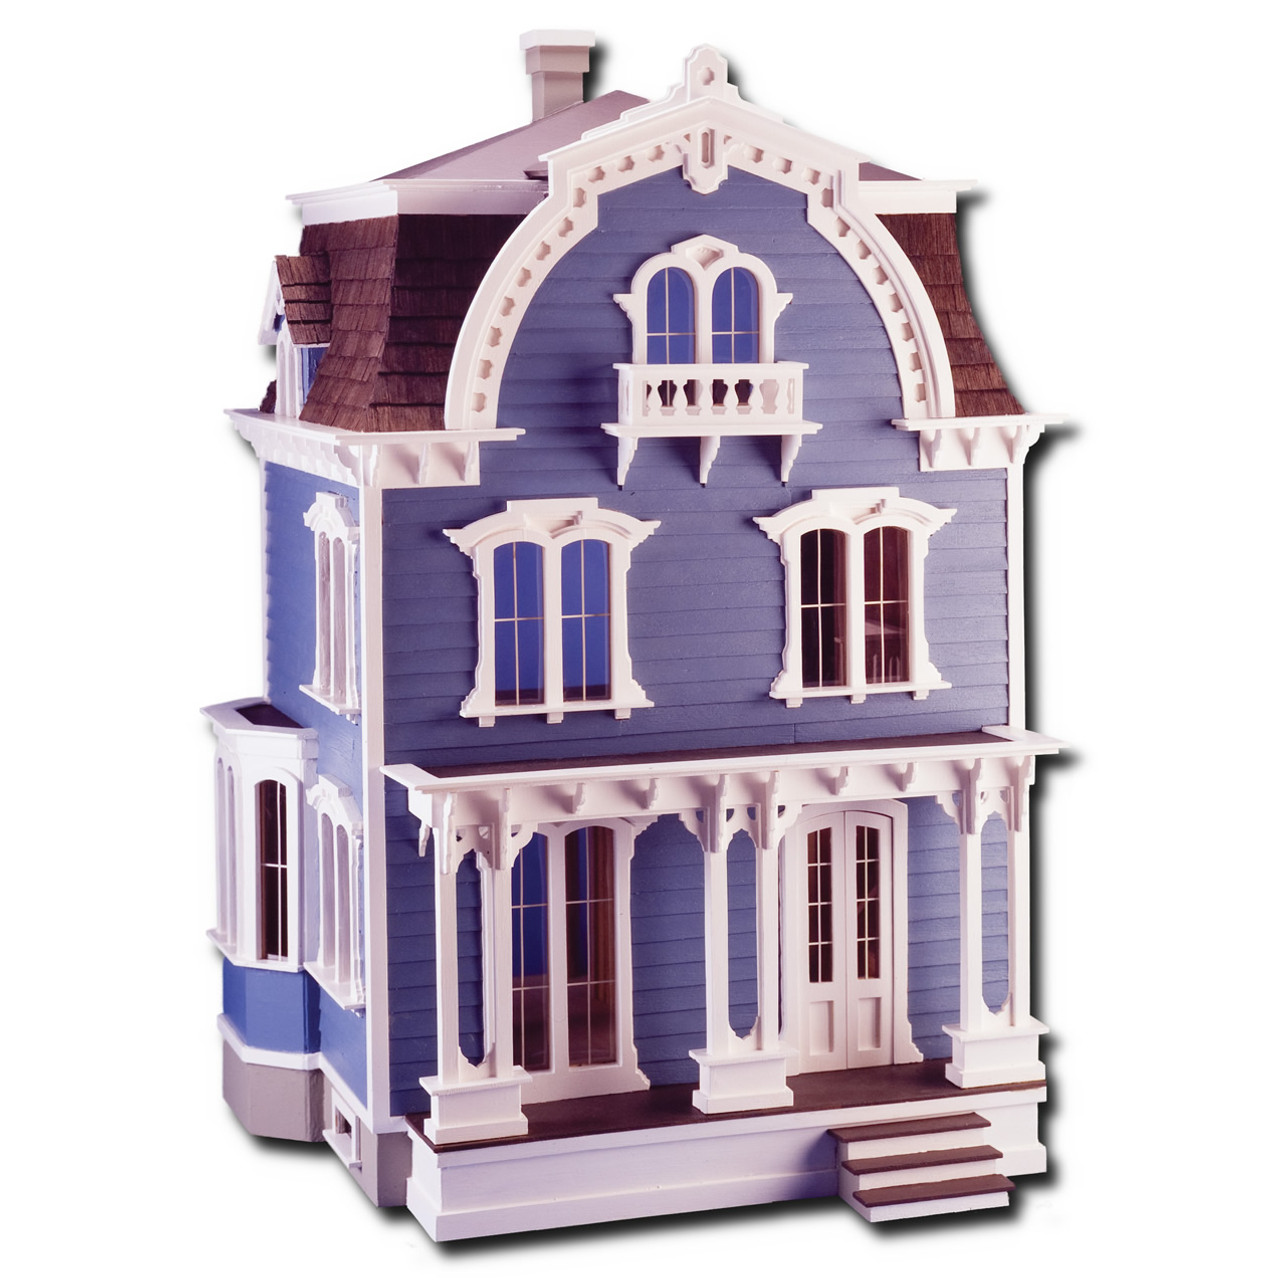 Terrific Willowcrest Dollhouse Kit Wiring Digital Resources Cettecompassionincorg